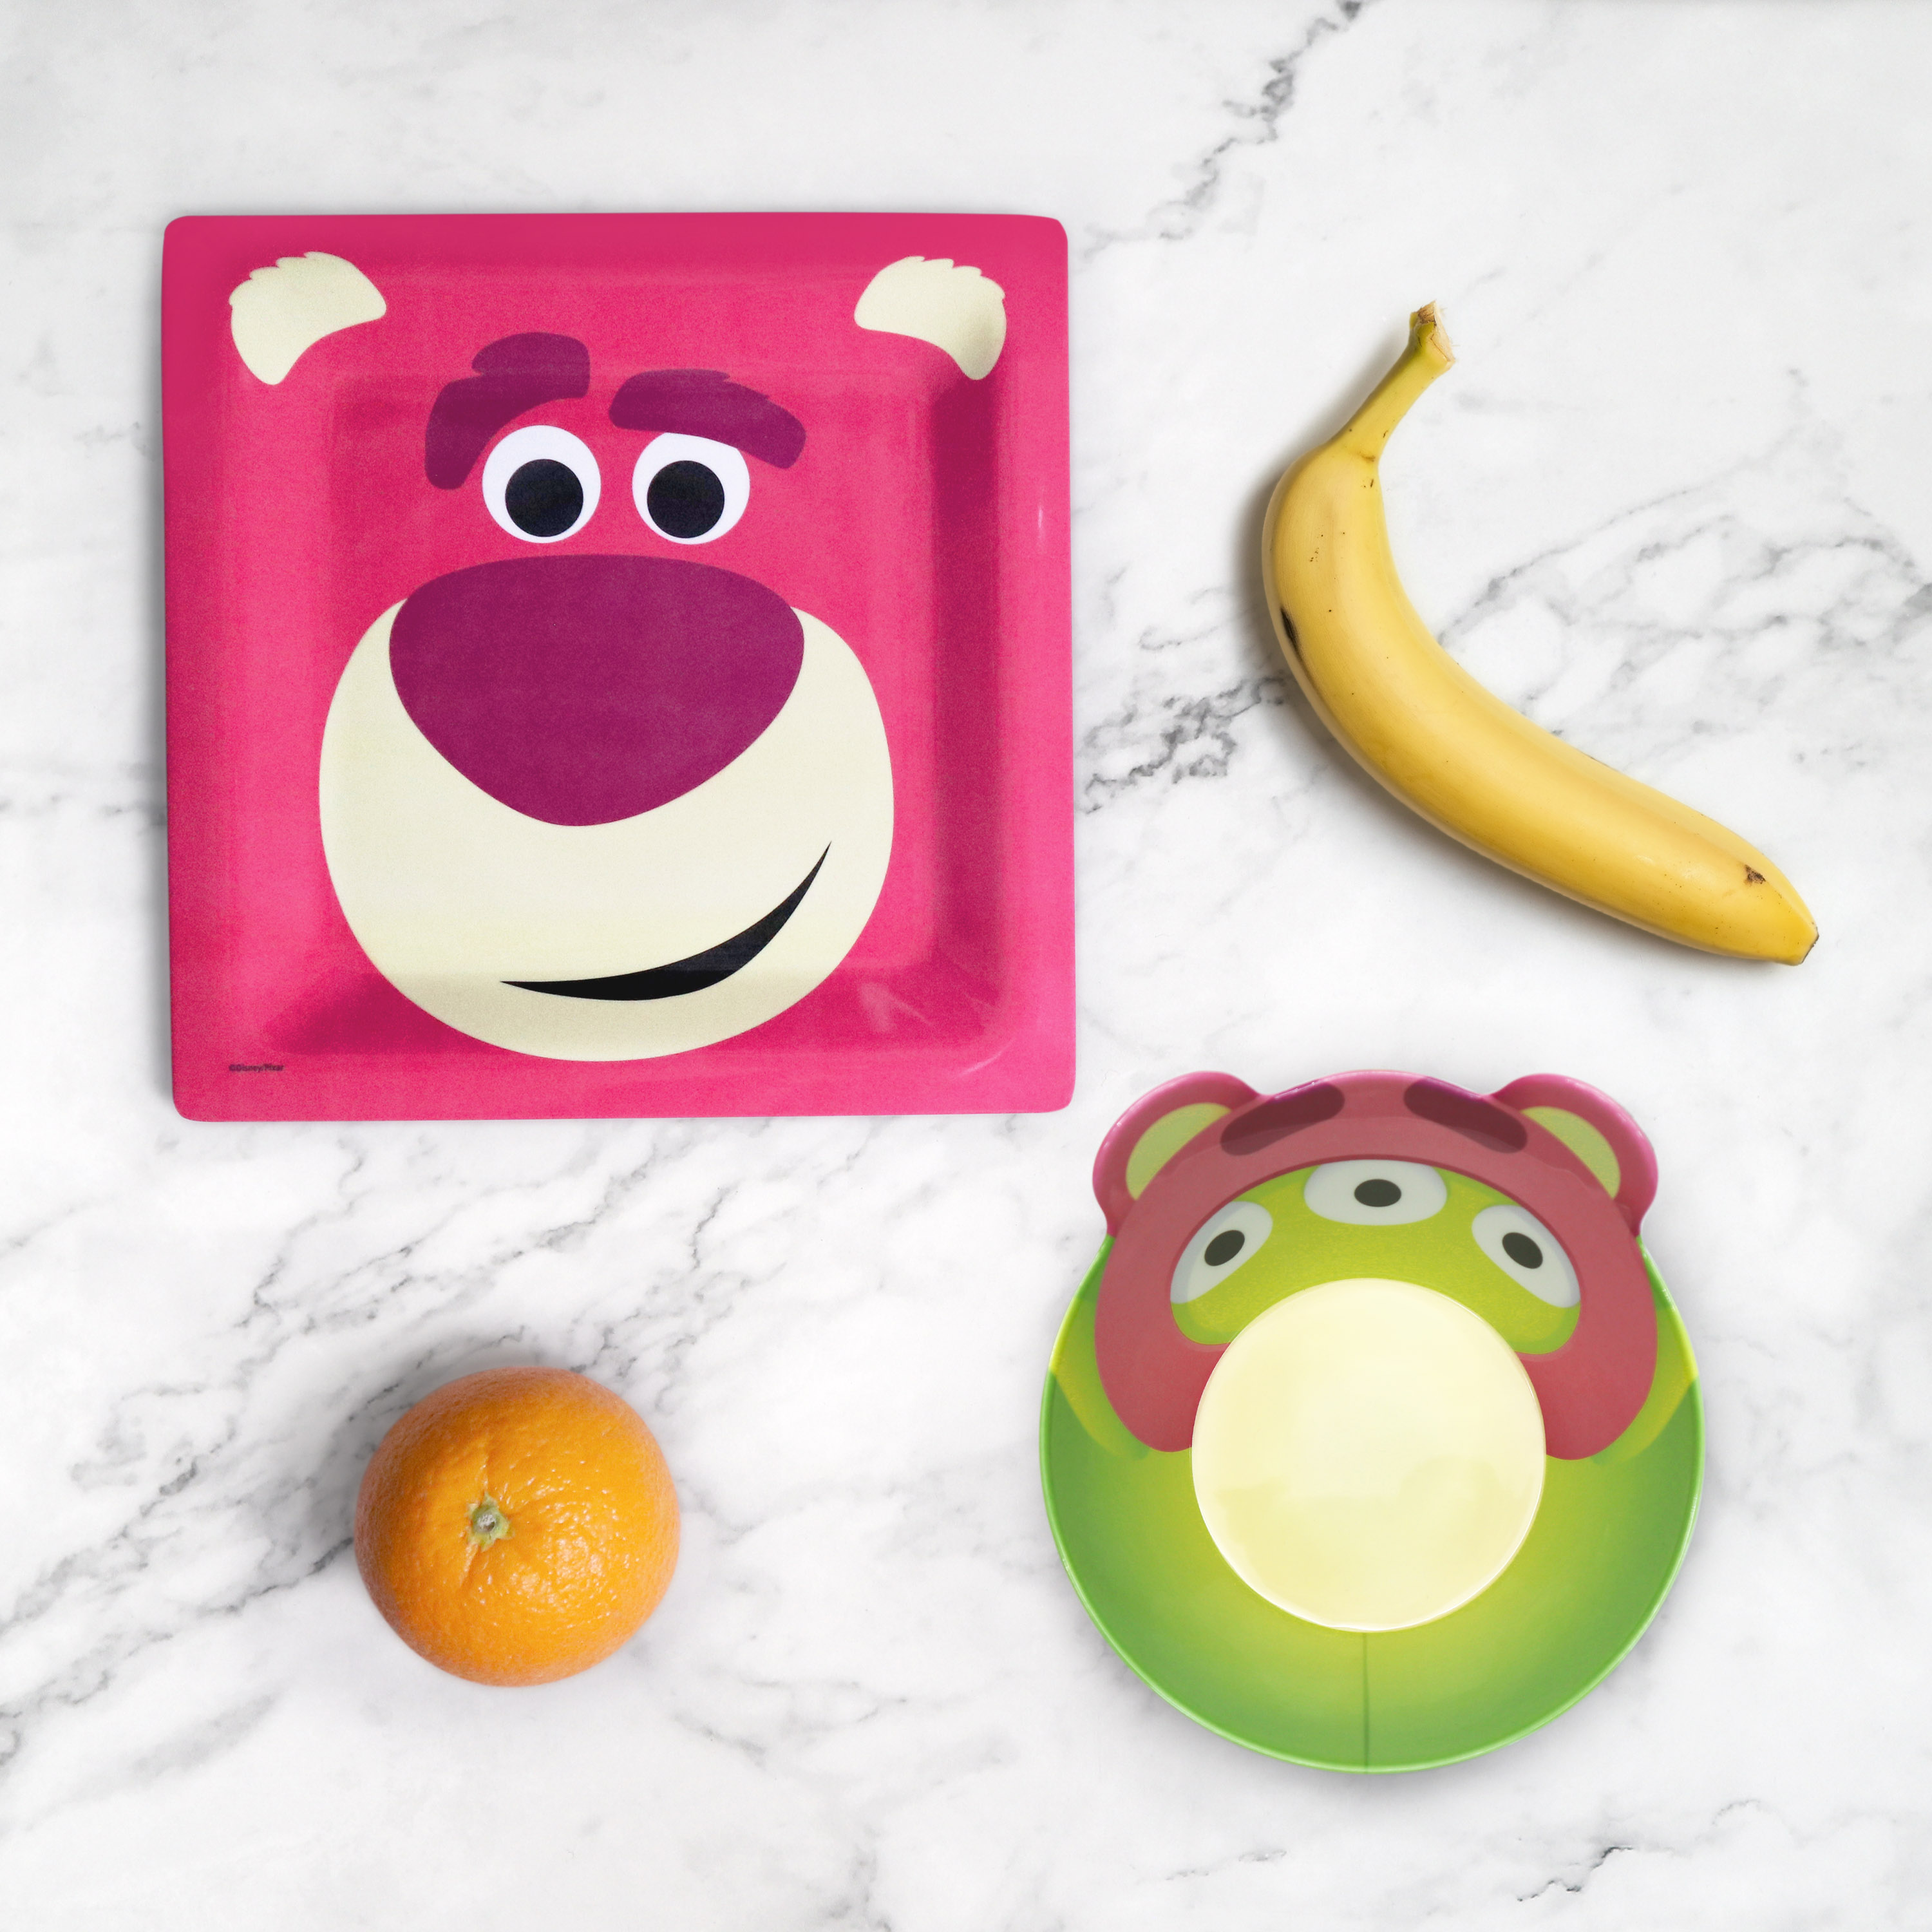 Disney and Pixar Toy Story 4 Plate and Bowl Set, Lotso, 2-piece set slideshow image 5